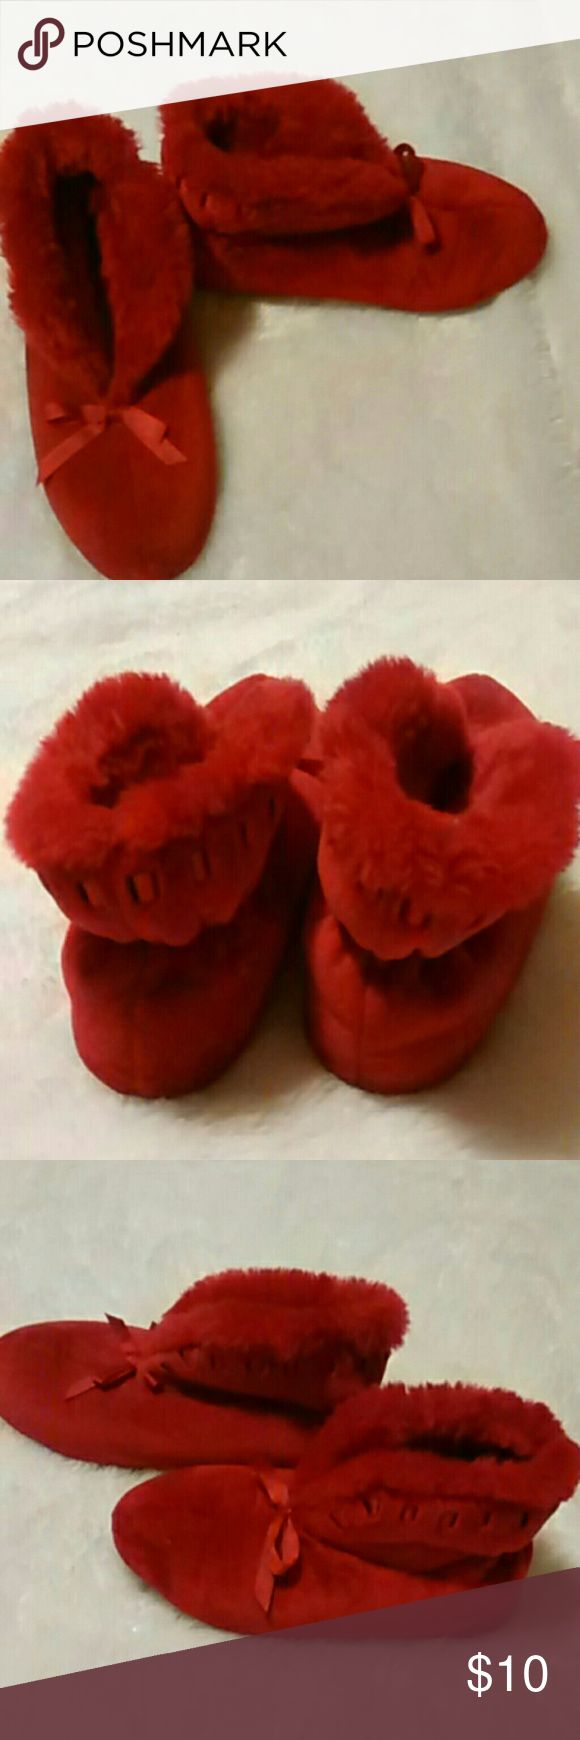 Red Dear Foam House Shoes These are very nice house shoes. Dear foam red . The size is 6 1/2-7 1/2. In great condition.  Offers always welcome. Bundle and save. Any questions please feel free to ask. Happy Poshing! Dear Foams Shoes